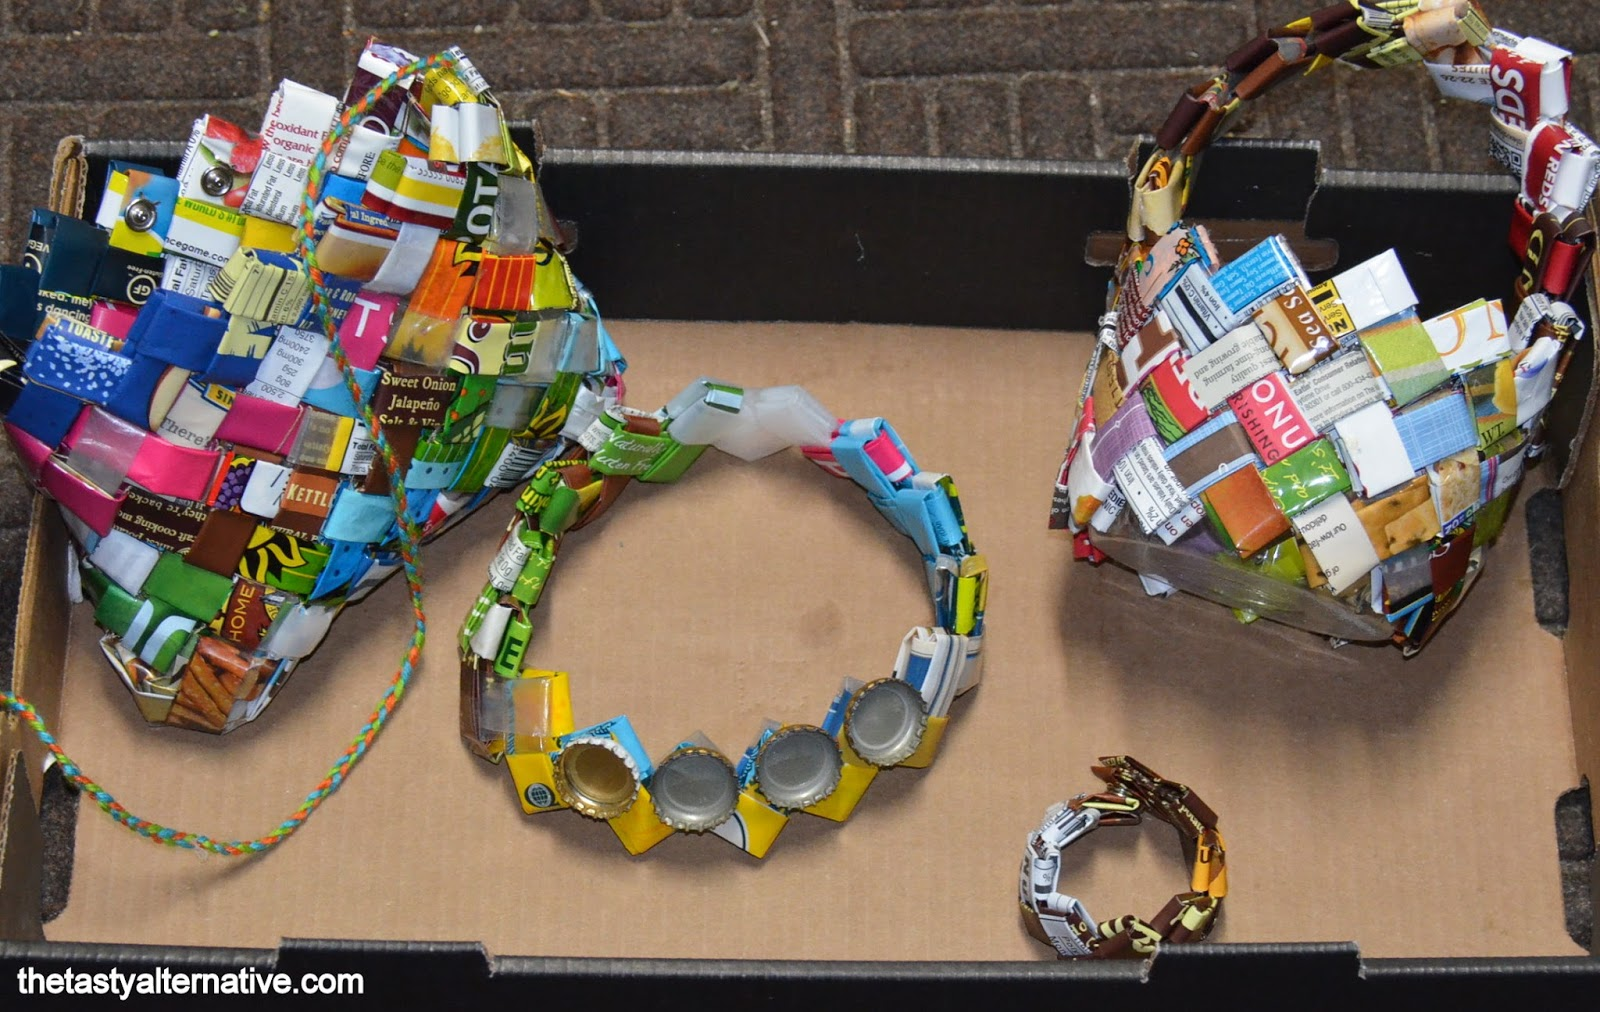 Waste material activity arts and crafts project ideas for Waste out of waste ideas